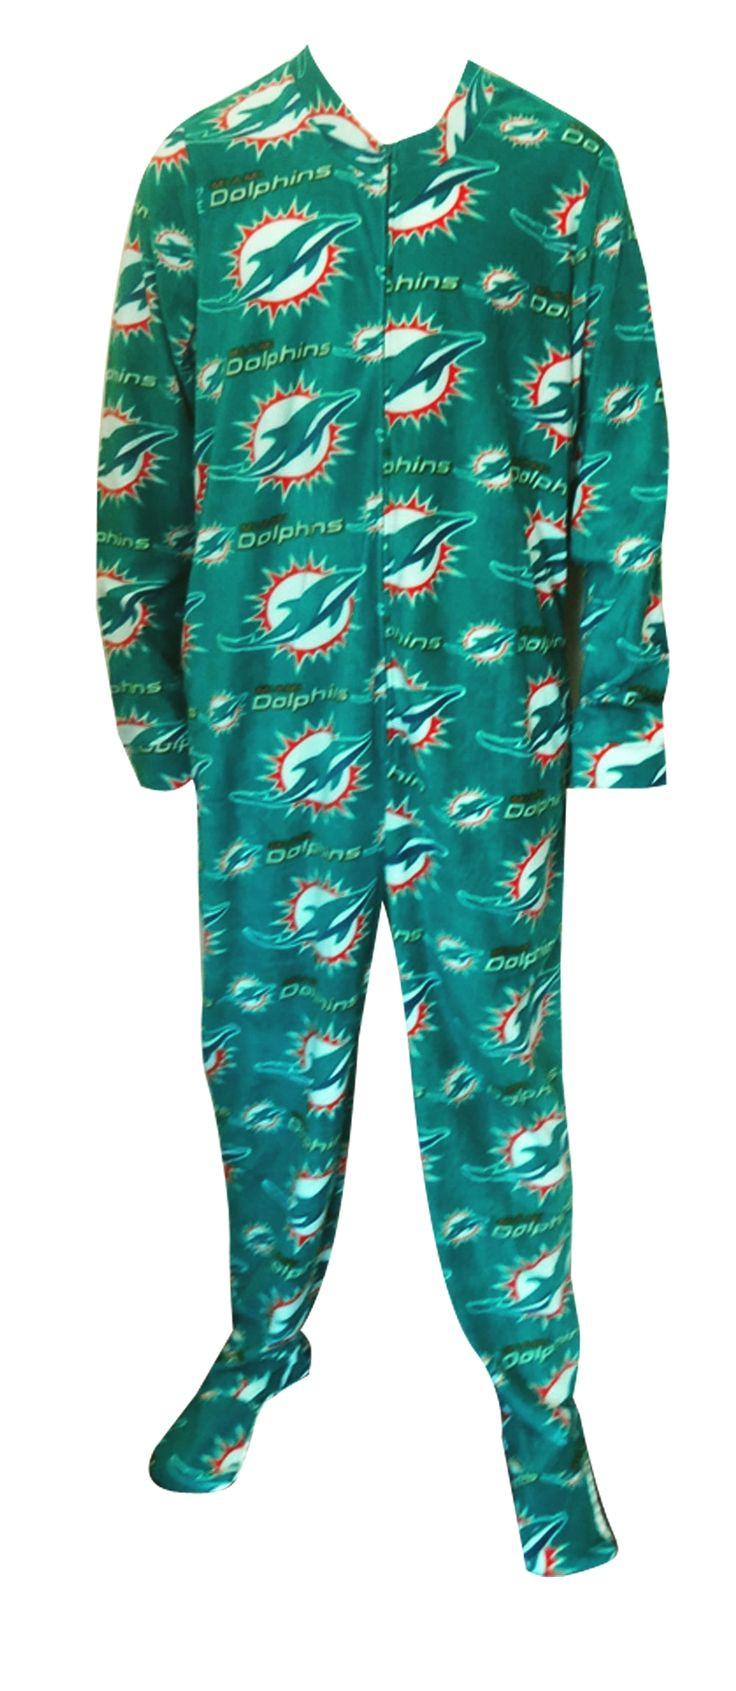 Miami Dolphins Guys Onesie Footie Pajama Show your team spirit! This cozy microfleece footie pajama for men features the classi...